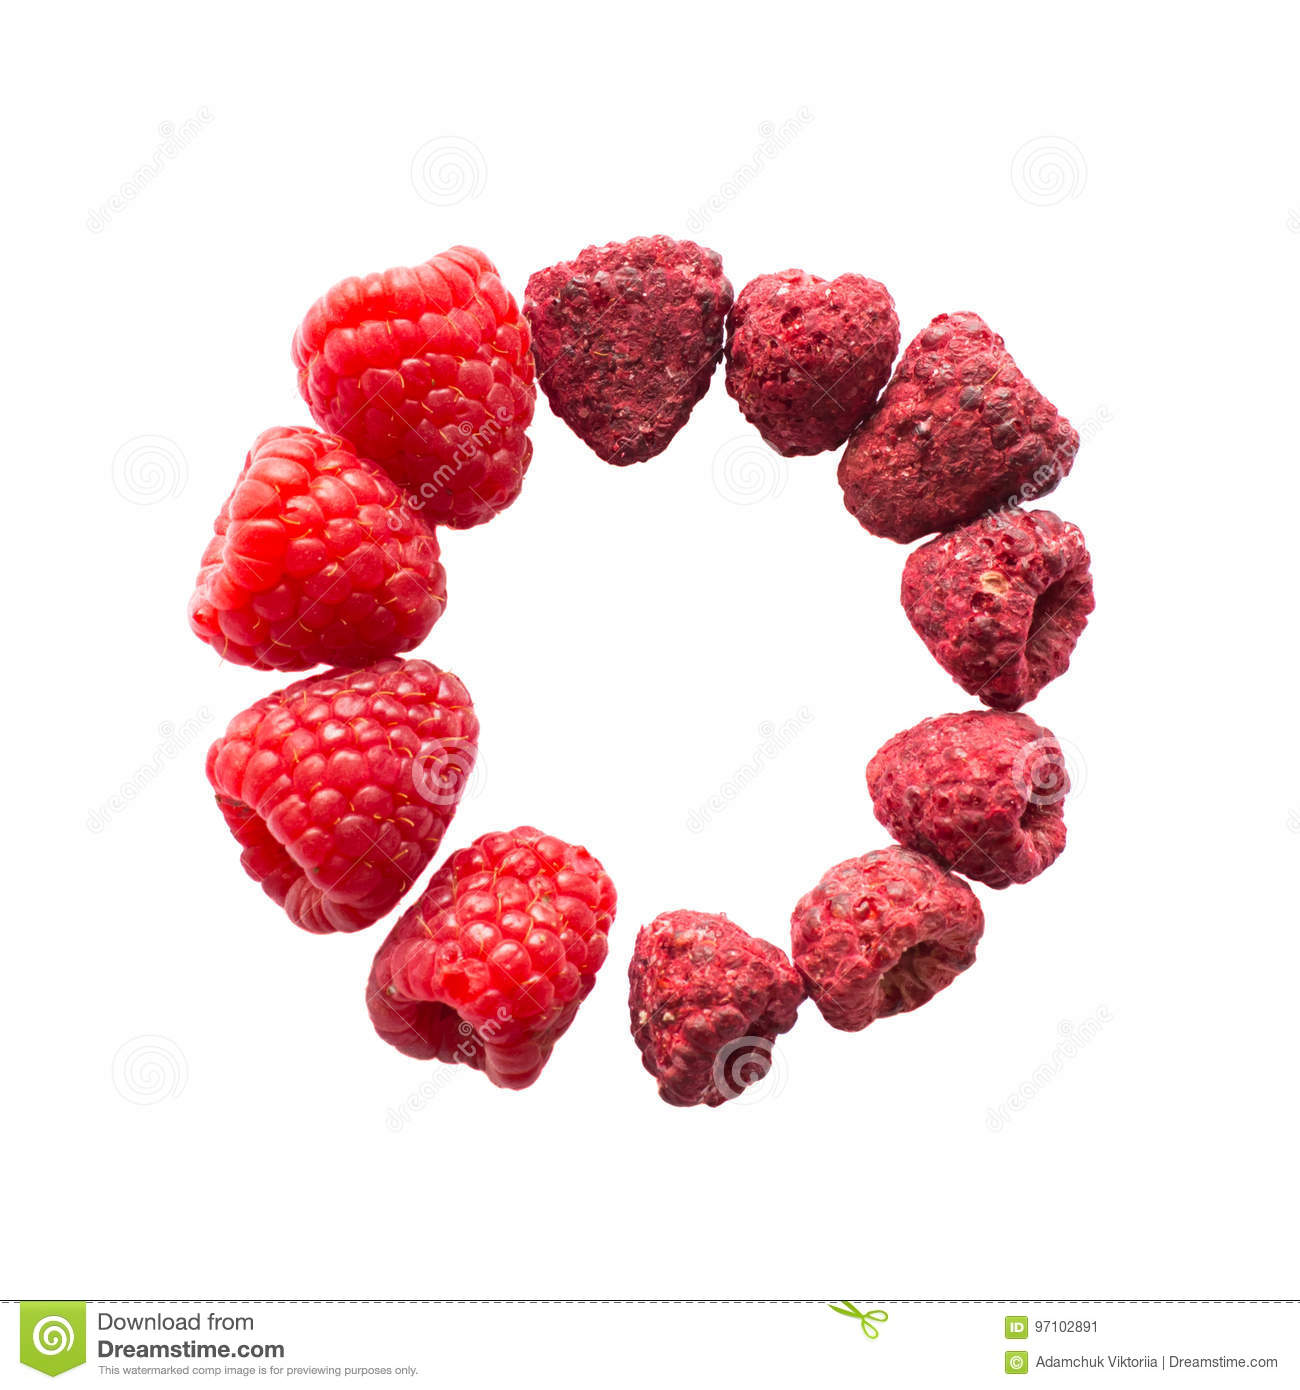 Freeze dried and fresh raspberry on a white background in the circle